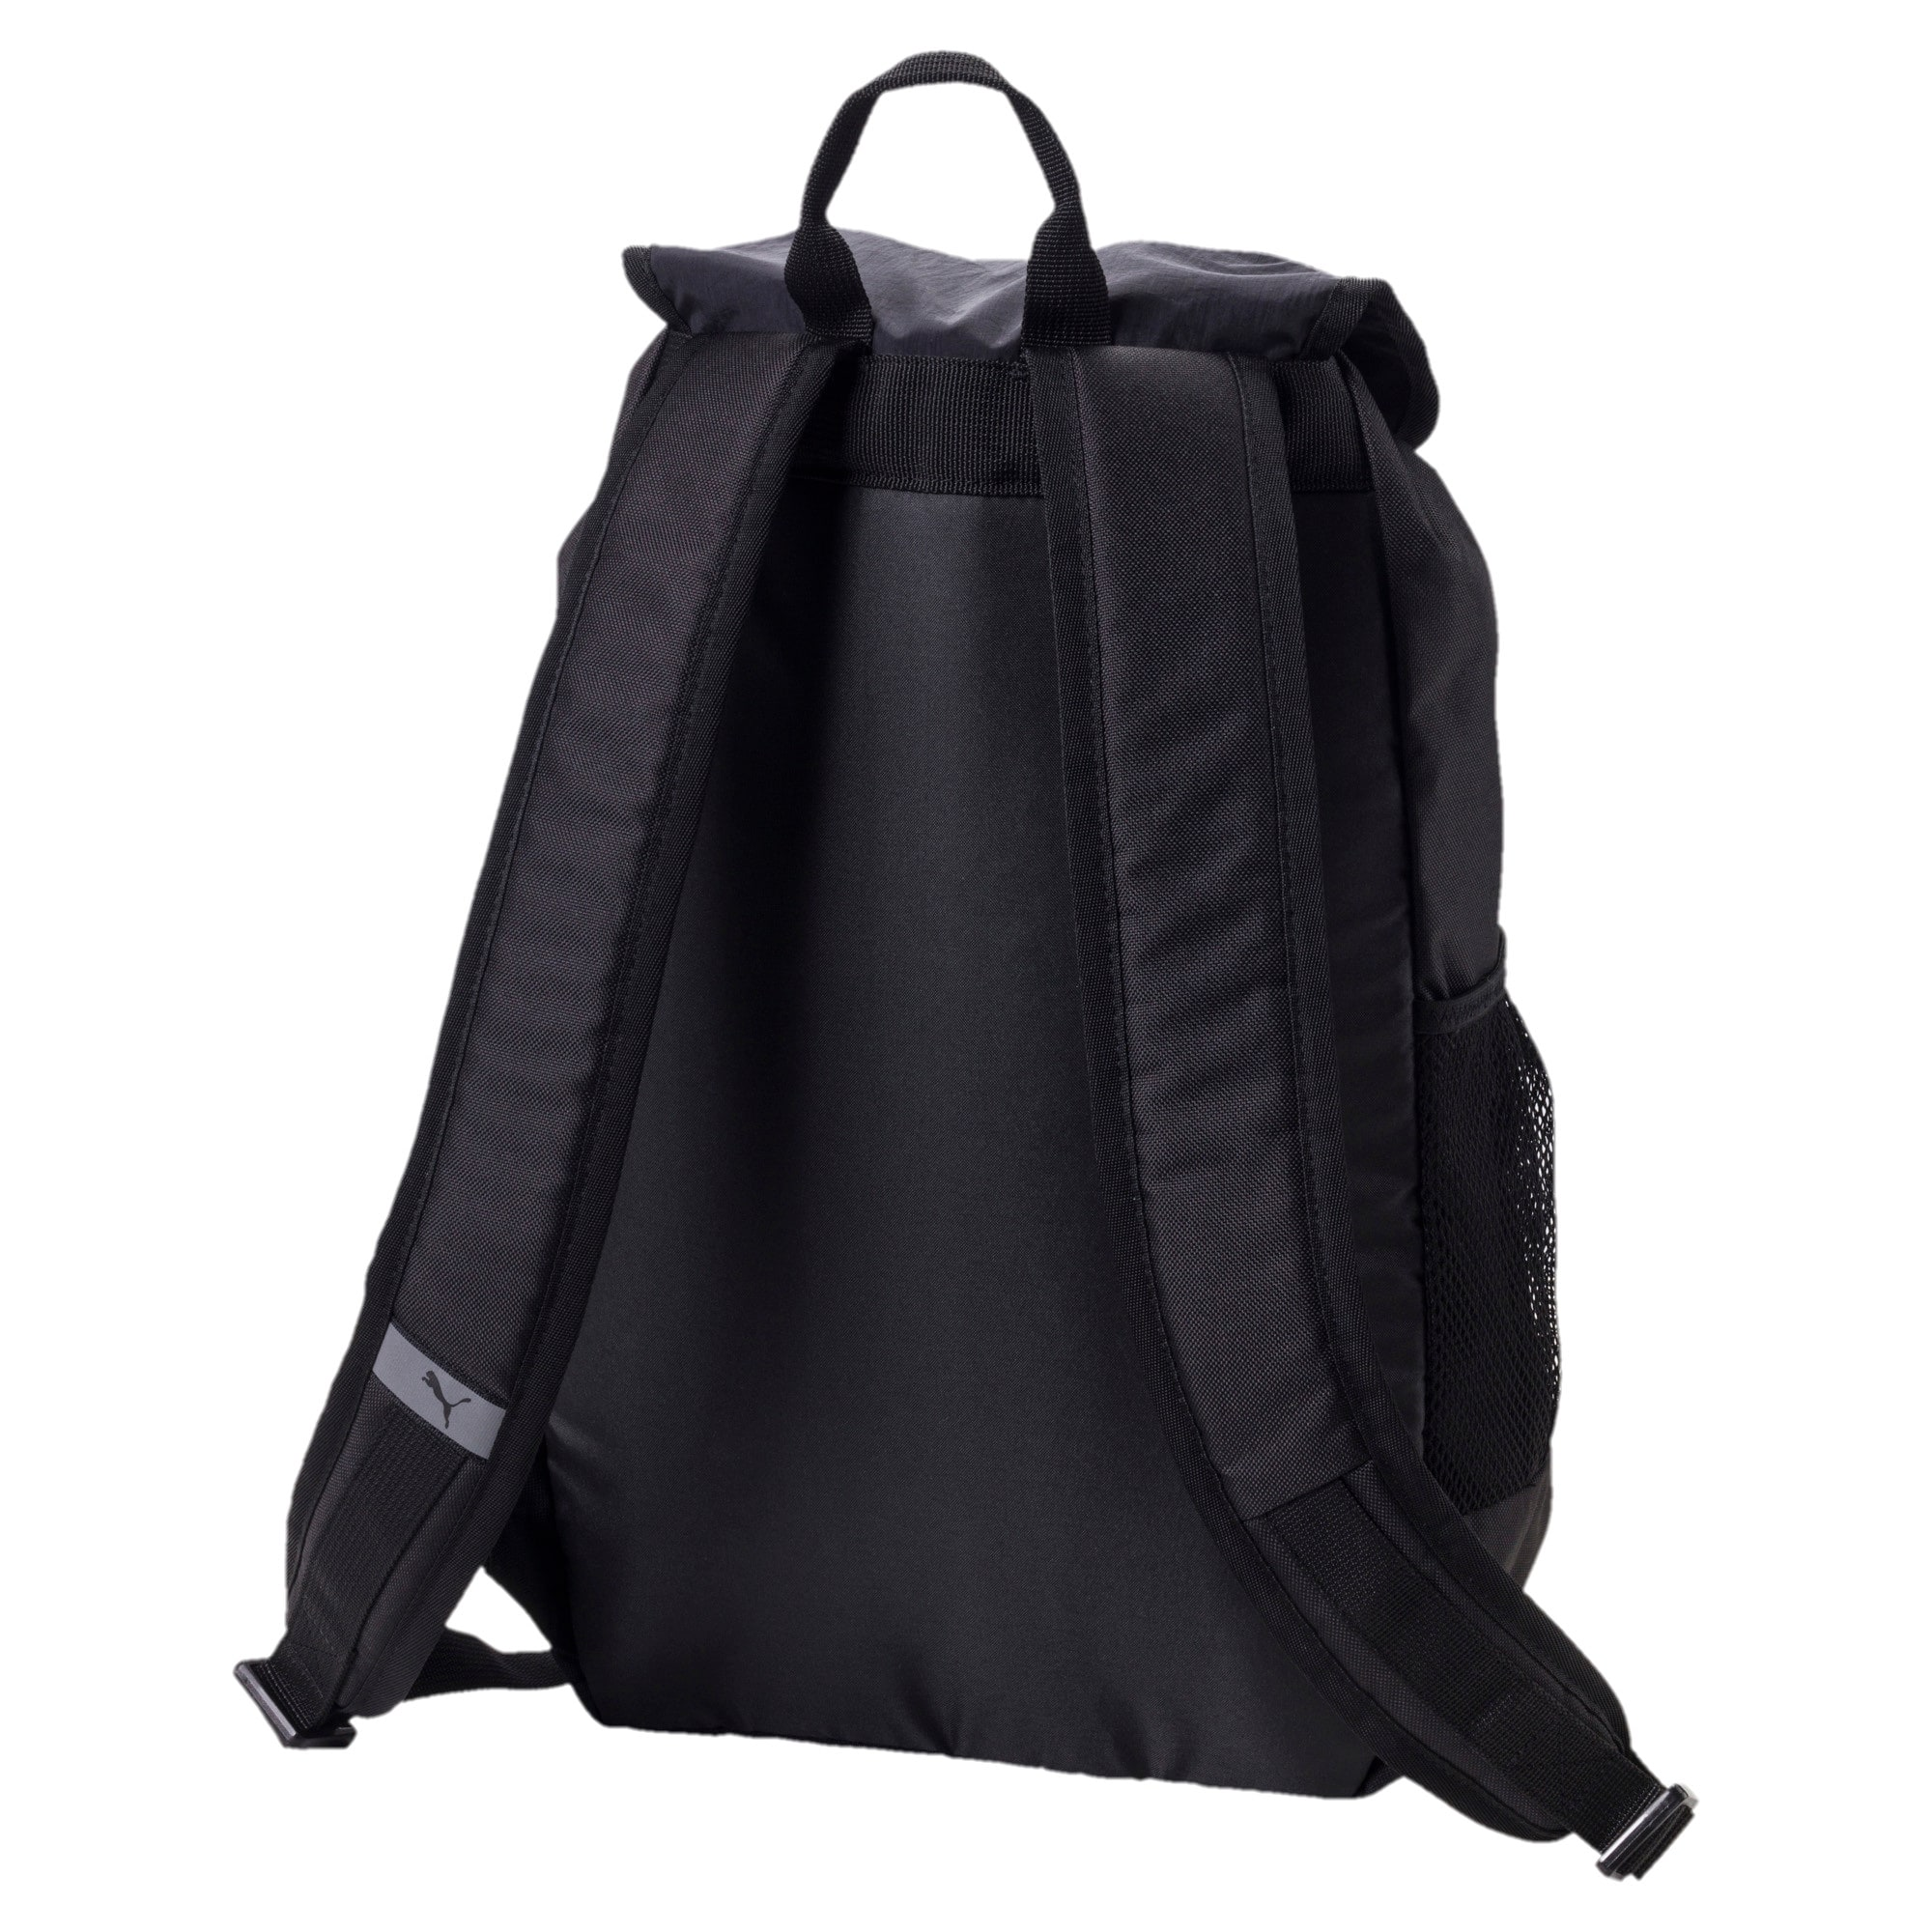 Thumbnail 2 of Women's Academy Backpack, Puma Black-SWAN, medium-IND